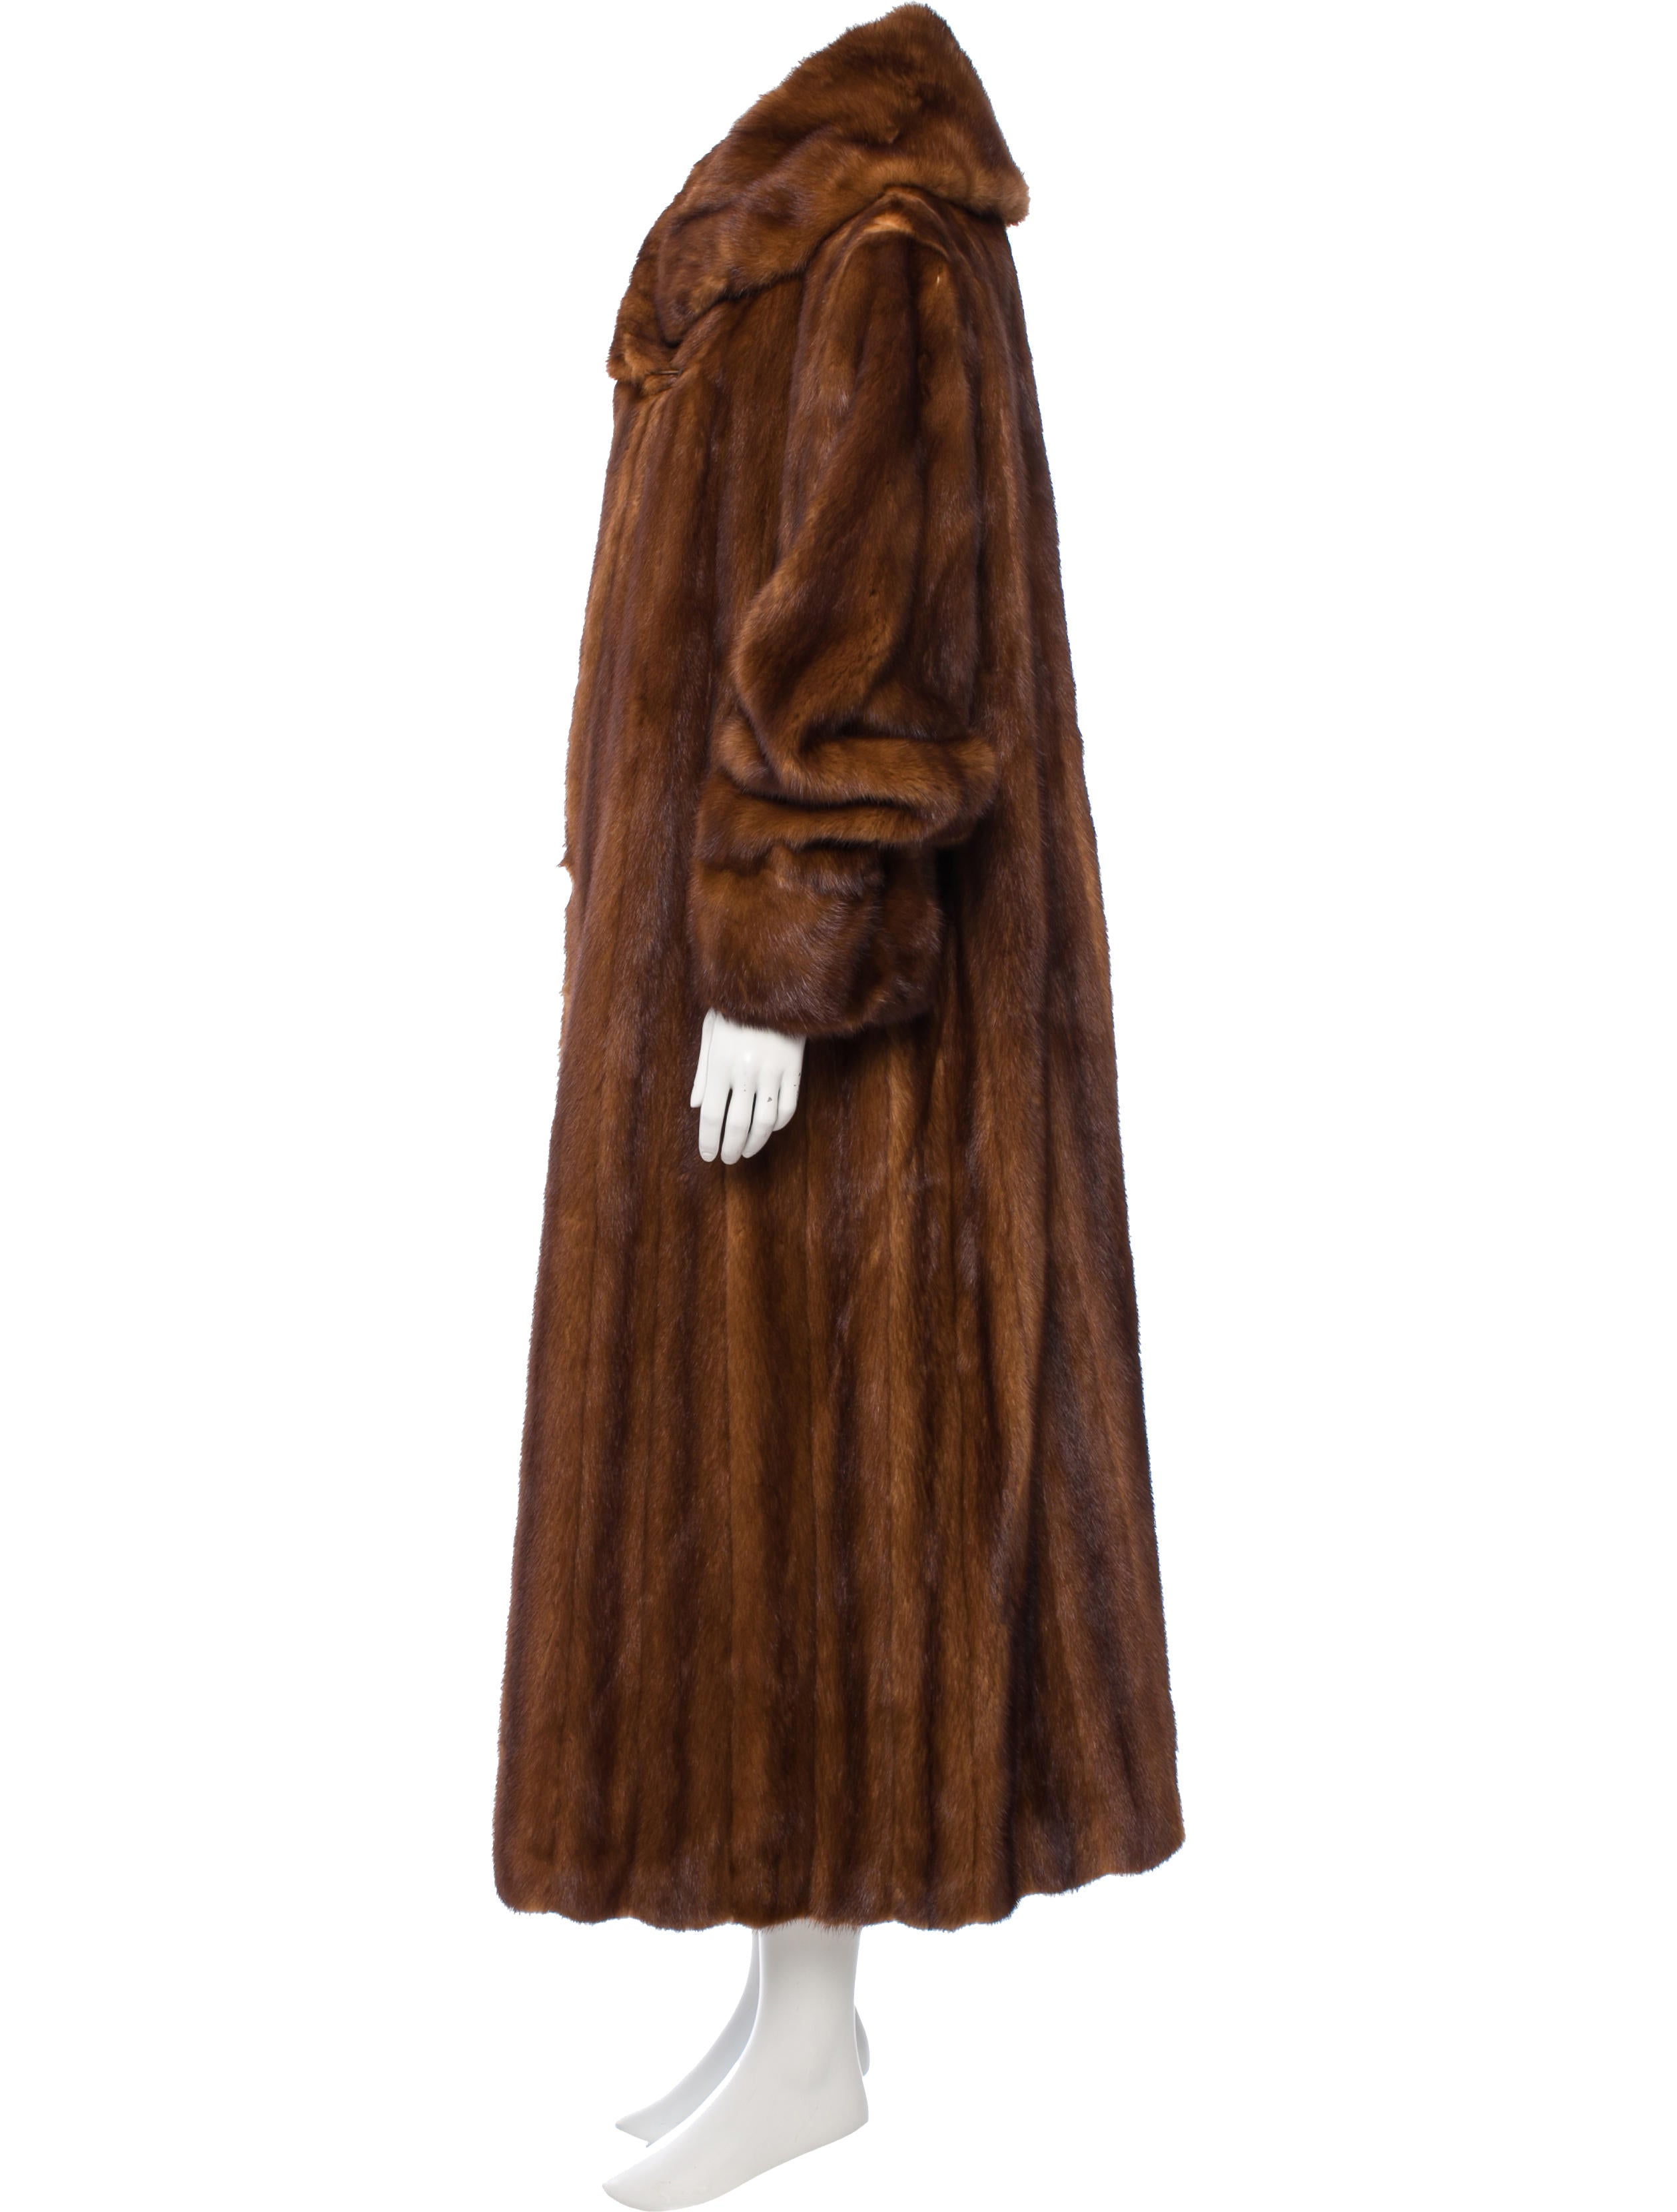 Contemporary Flatware Long Mink Coat Clothing Fur21600 The Realreal